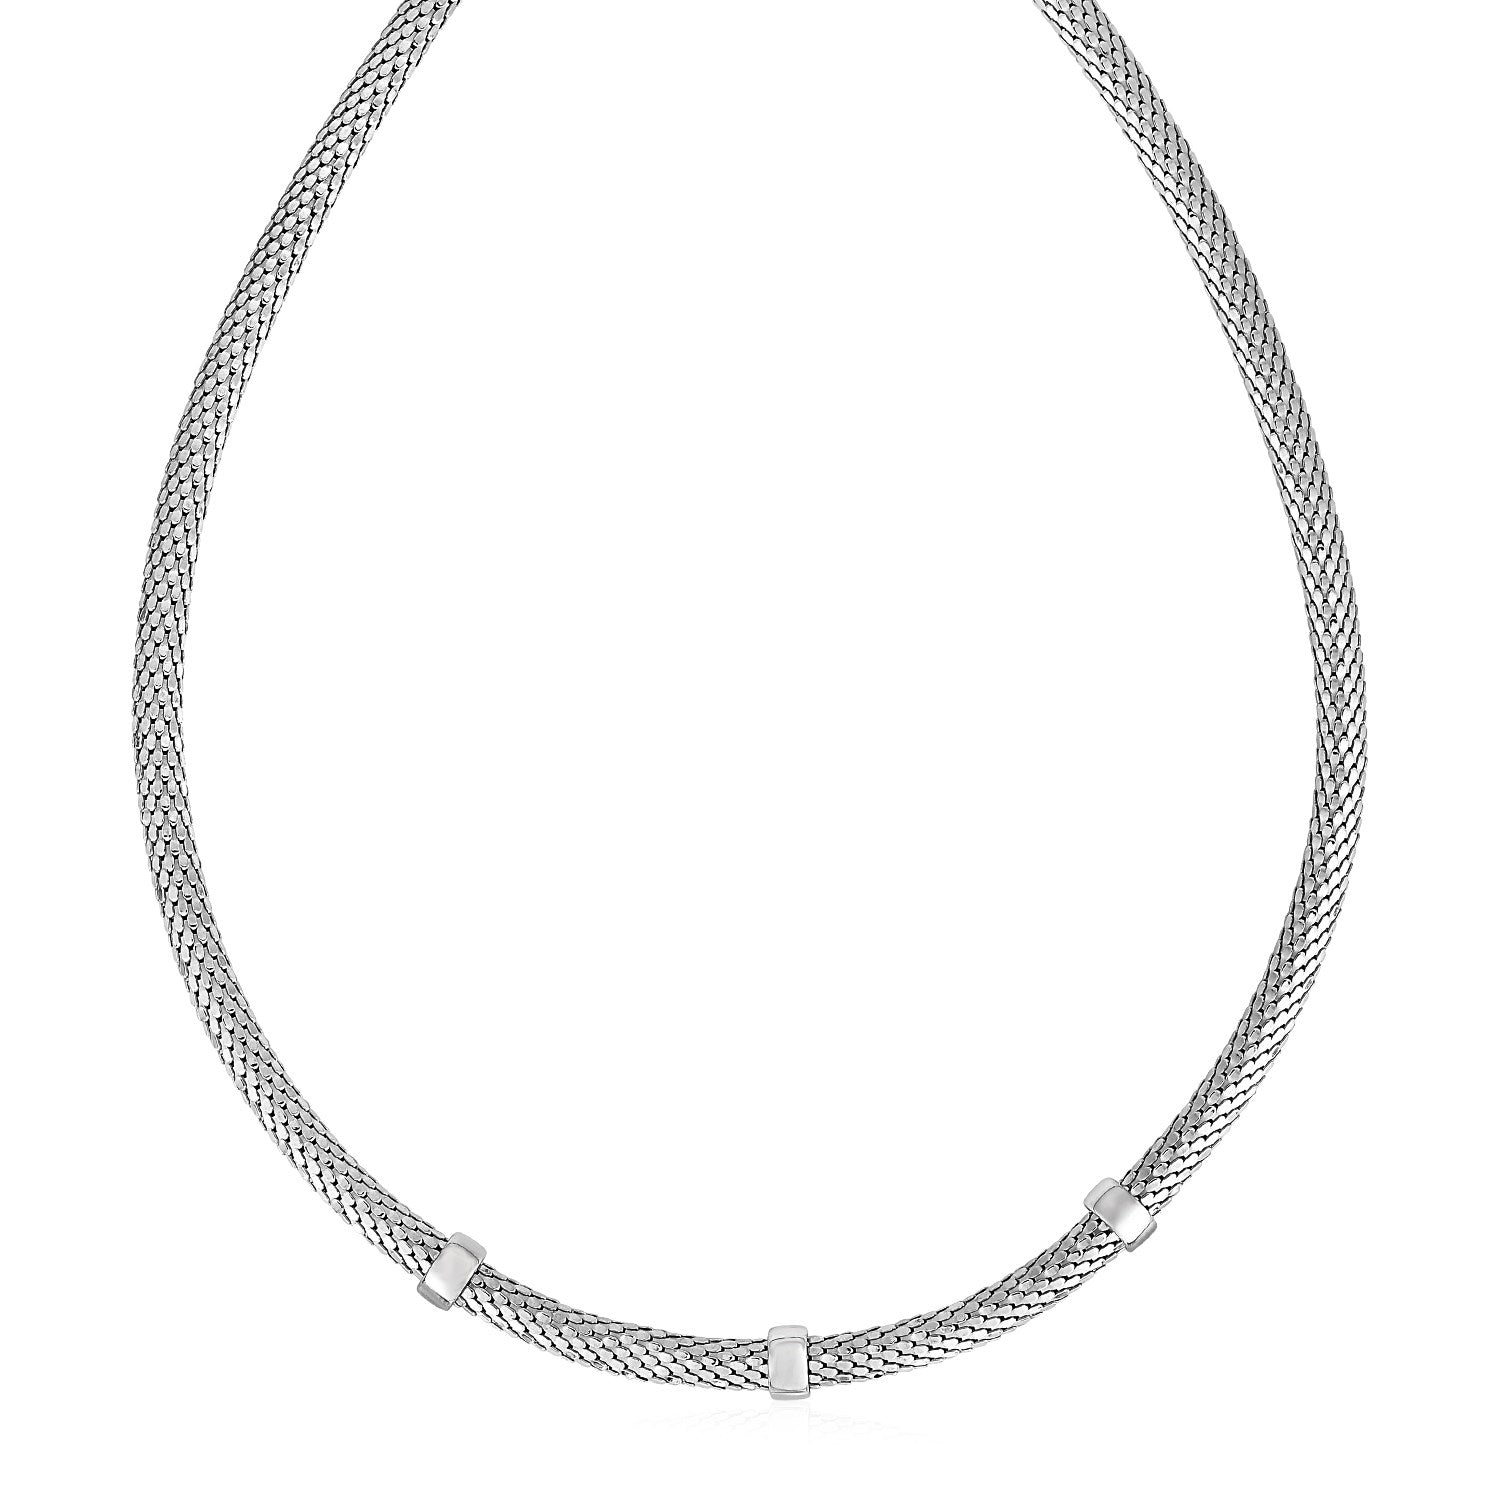 Omega Chain Station Necklace in Sterling Silver